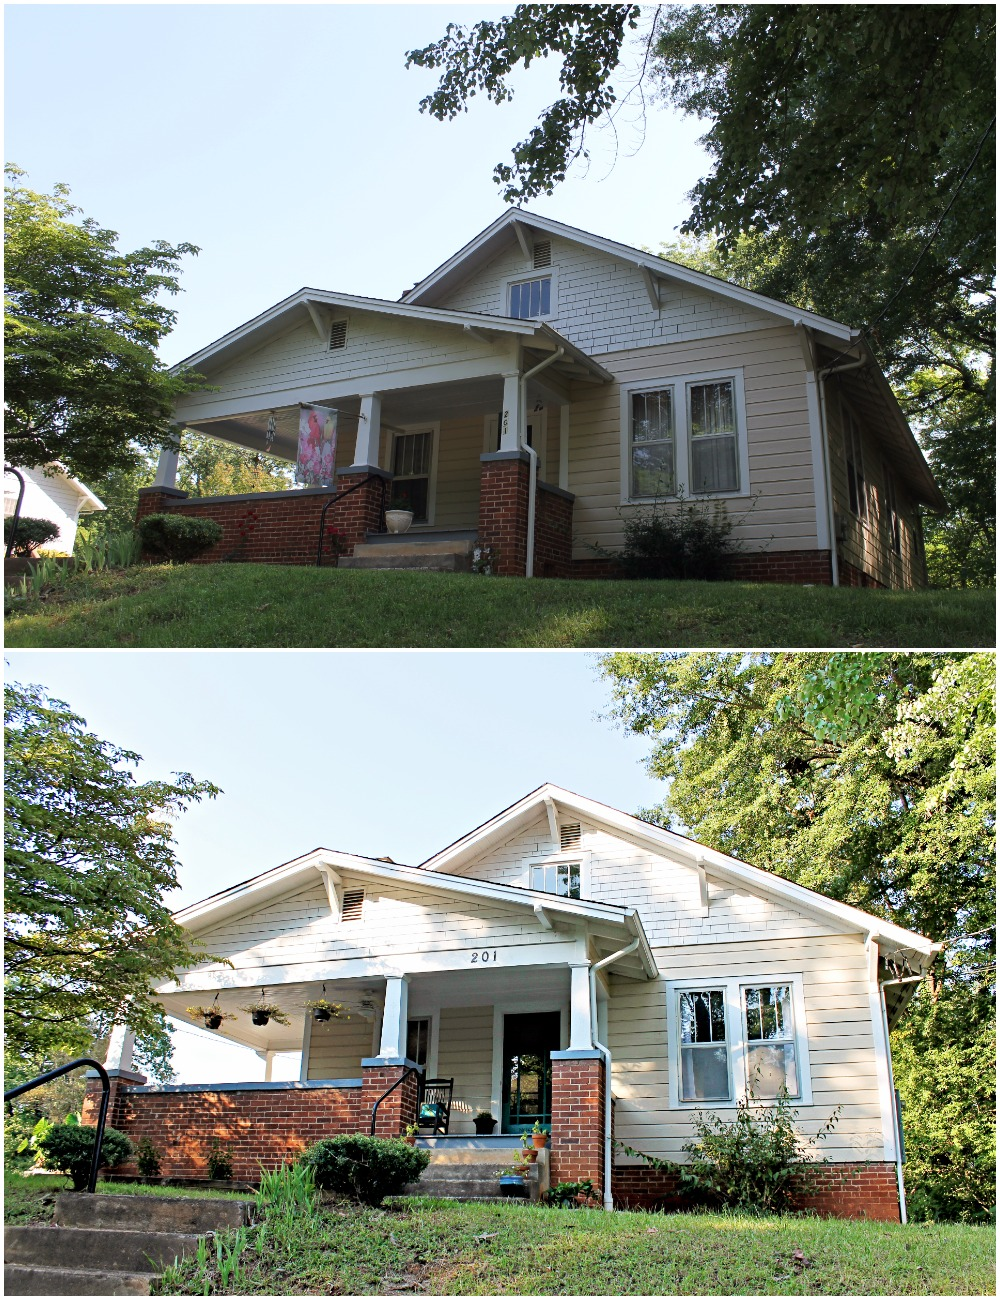 House Flipping Before and Afters - Curb Appeal and Backyard on a Budget DIY (4).jpg